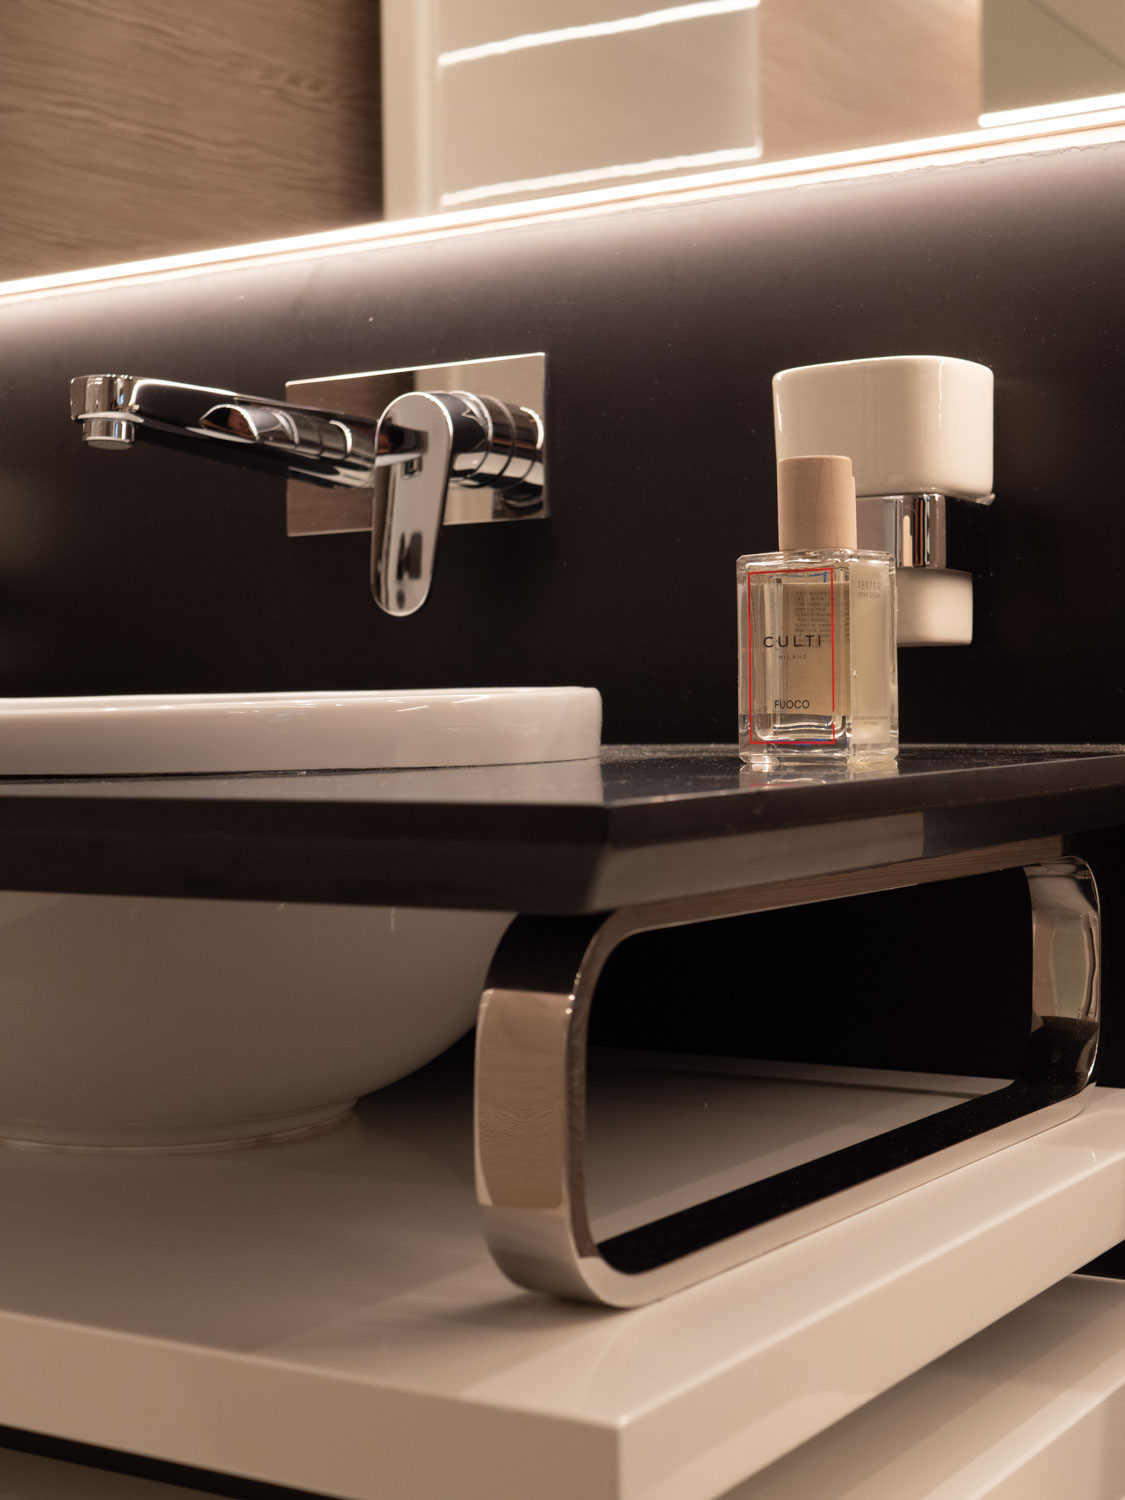 Extra 93 Yacht Bathroom Design